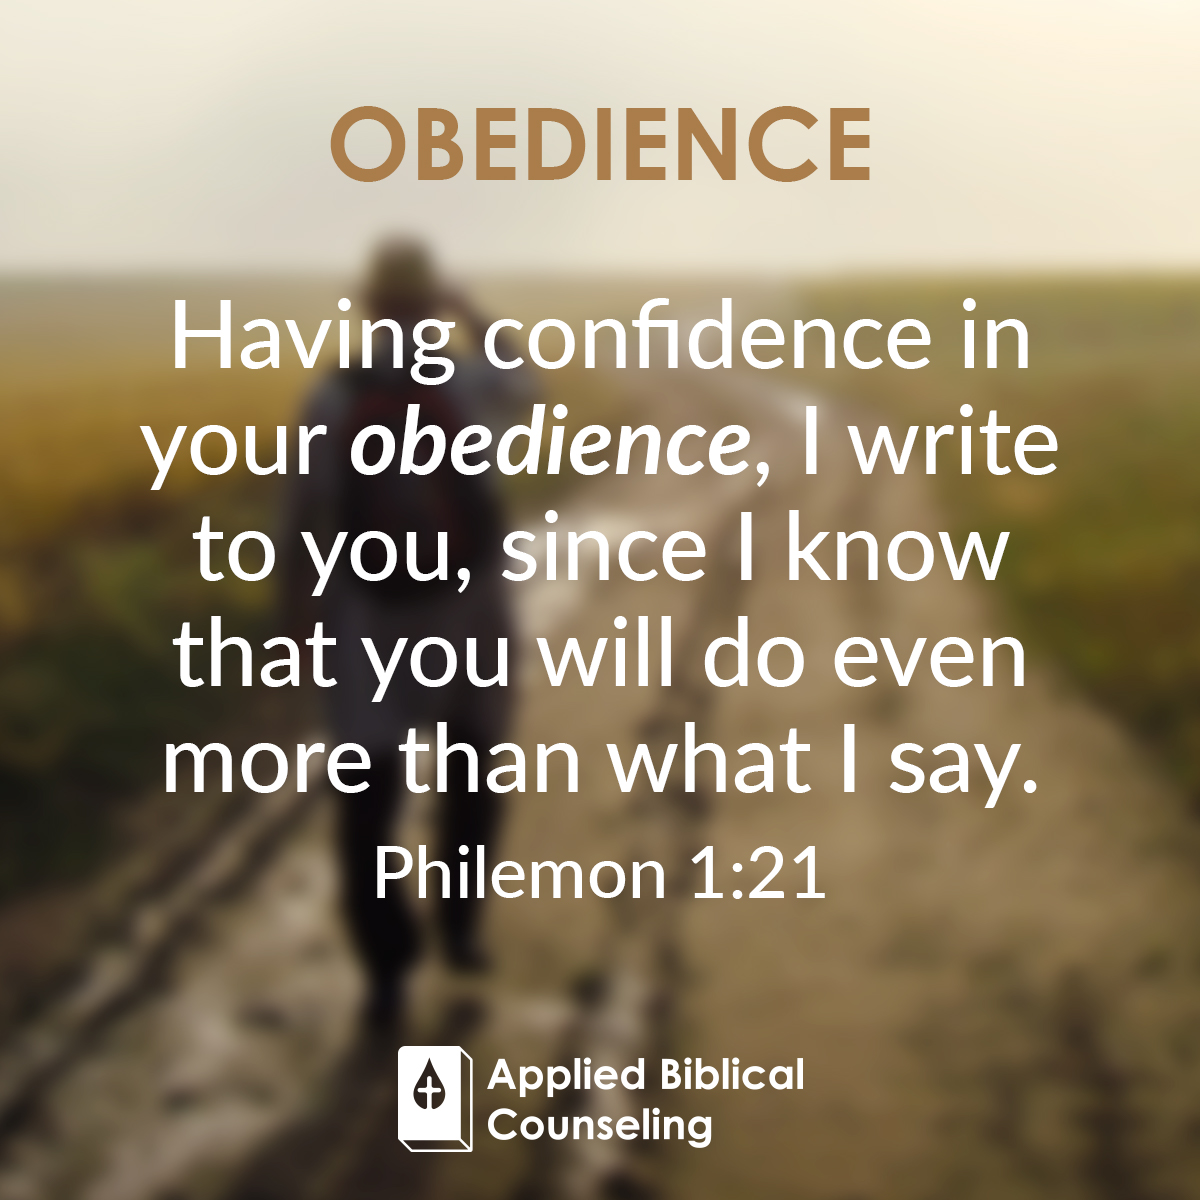 Applied Biblical Counseling Facebook w23 Obedience 3